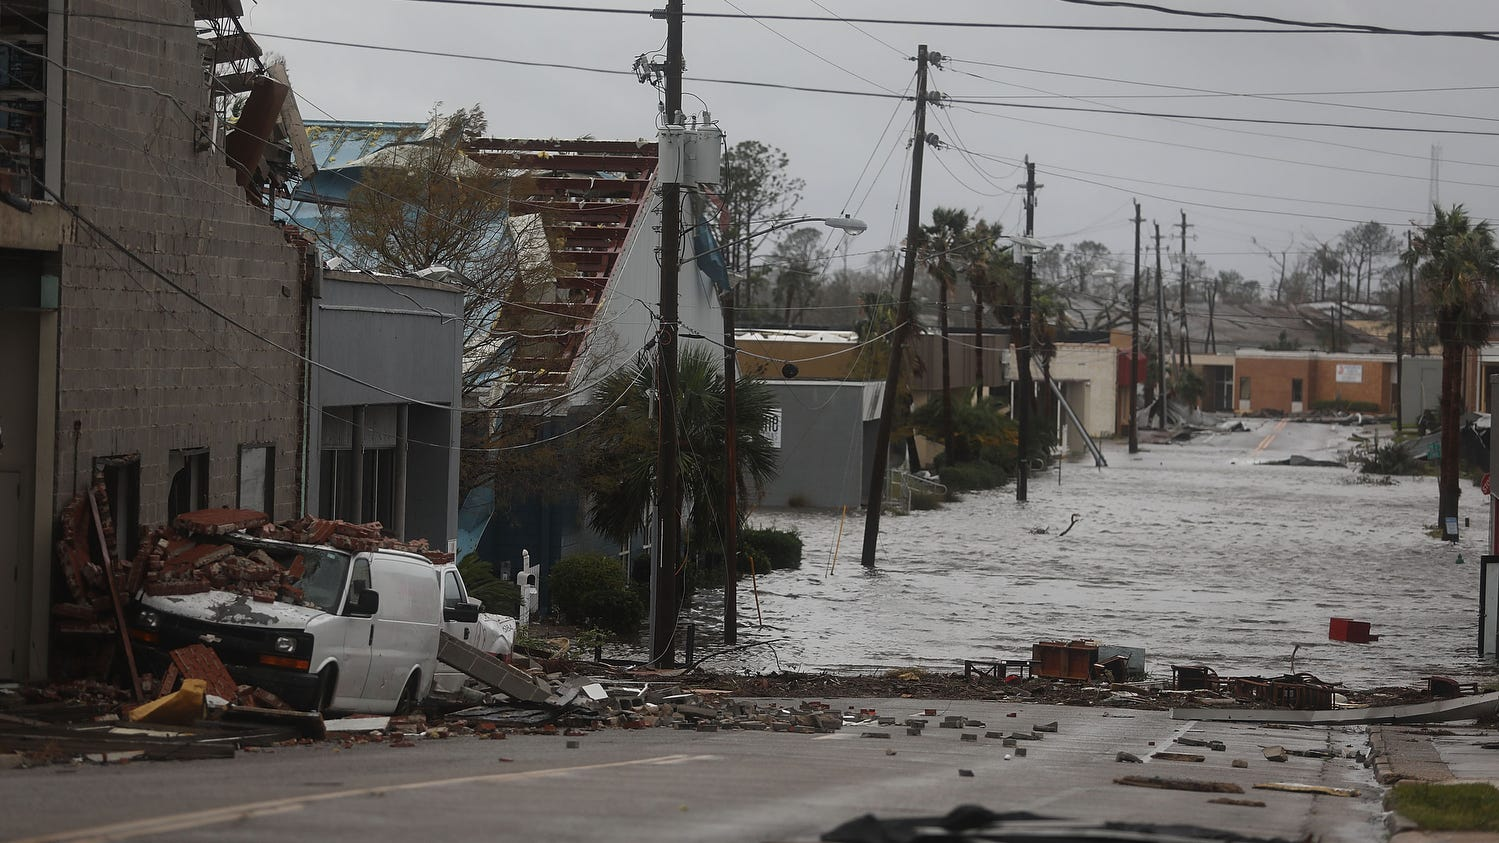 Damaged buildings and a flooded street are seen after hurricane Michael passed through Panama City.